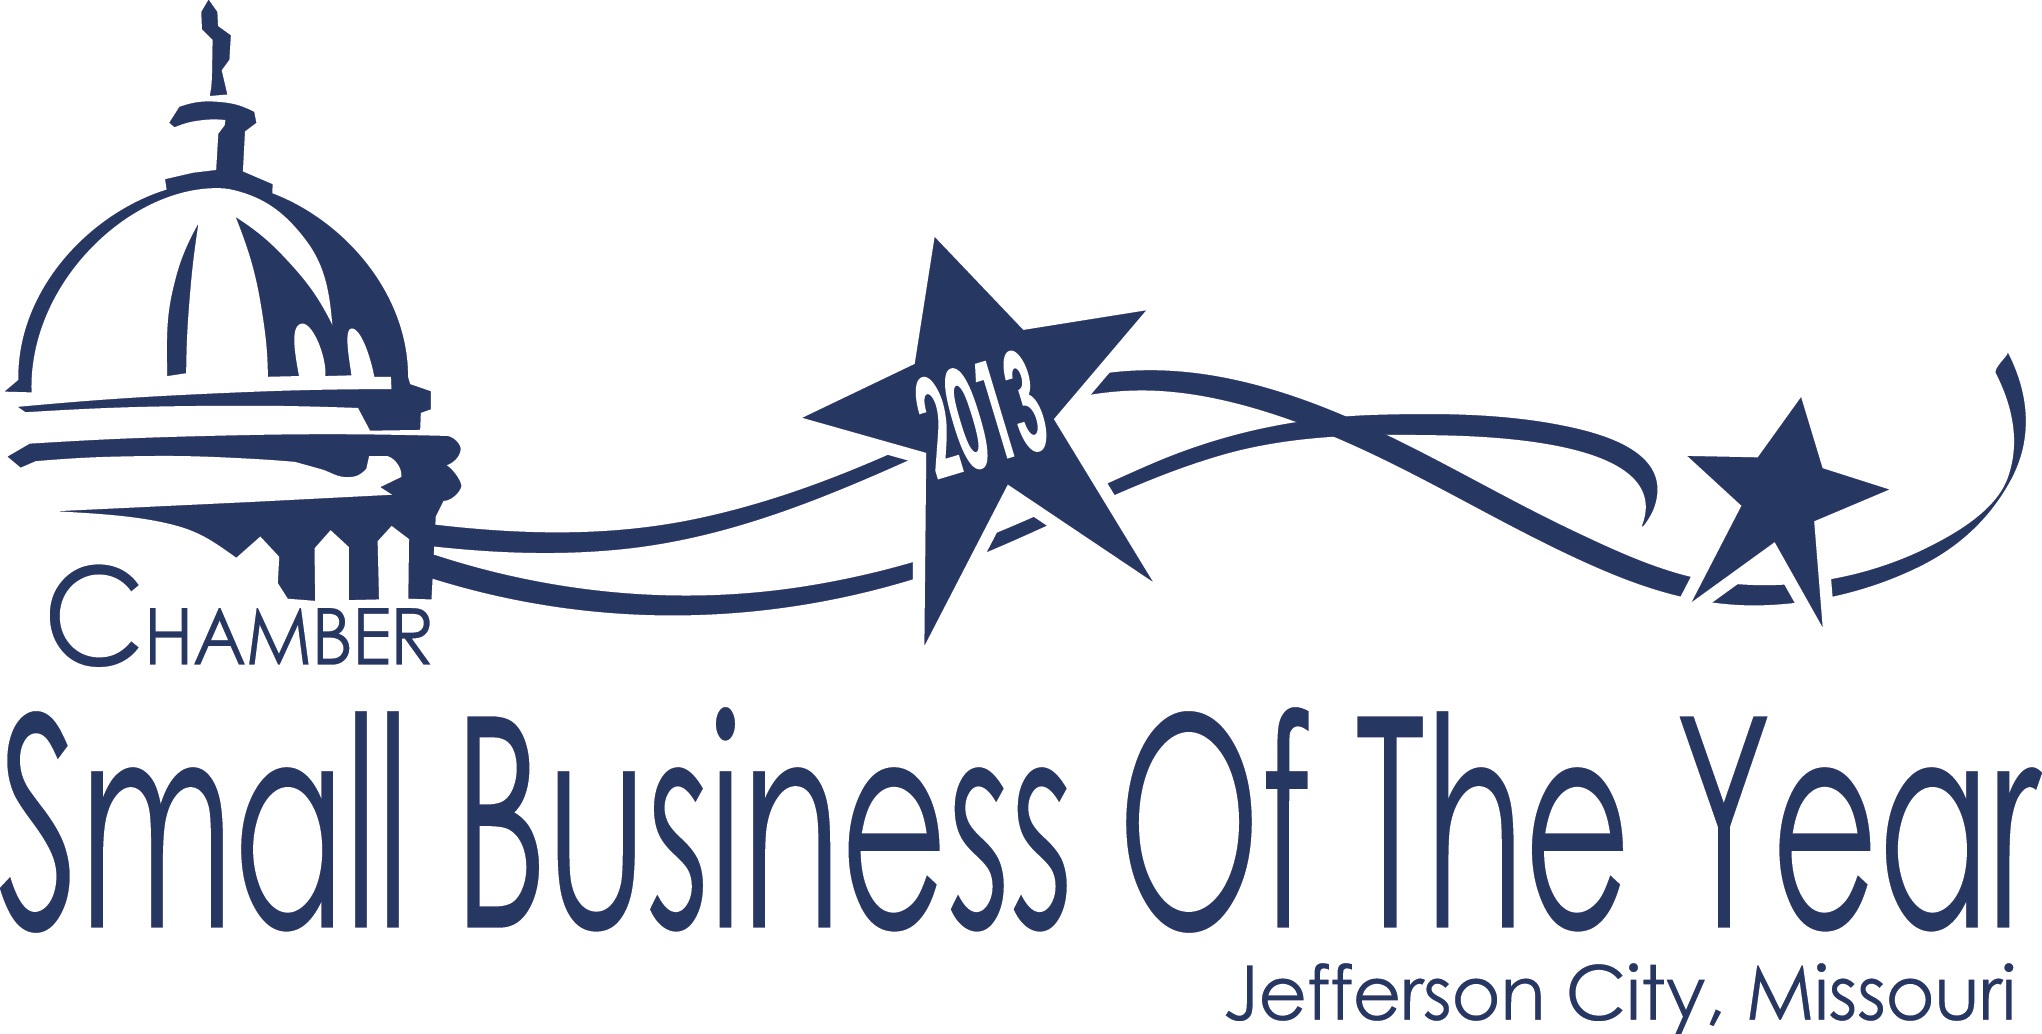 small-business-of-the-year-marshall-and-company-hair-and-body-wellness